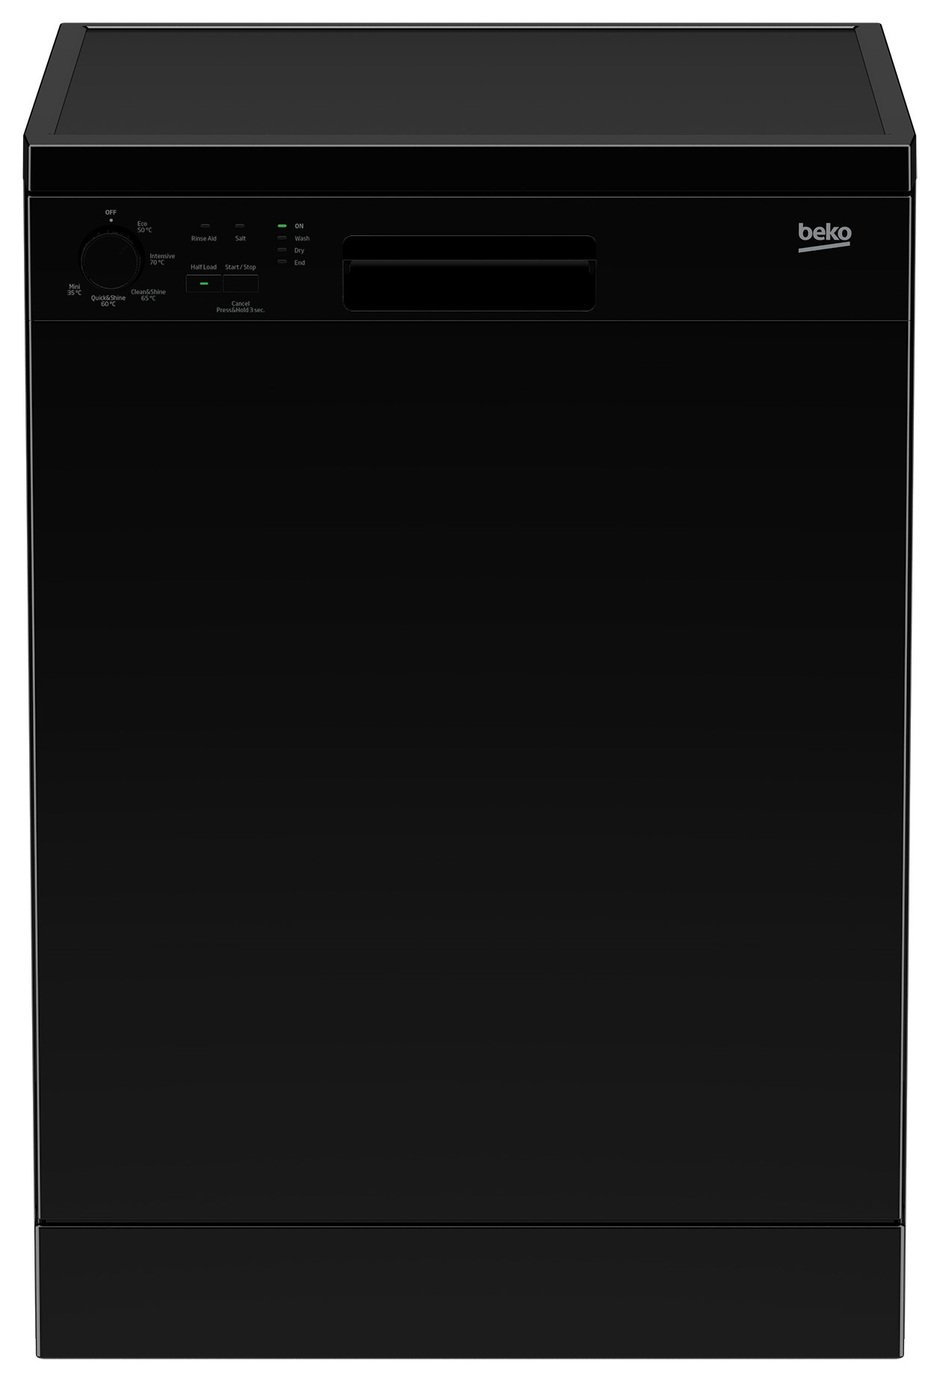 Beko DFN05310B Full Size Dishwasher - Black from Beko